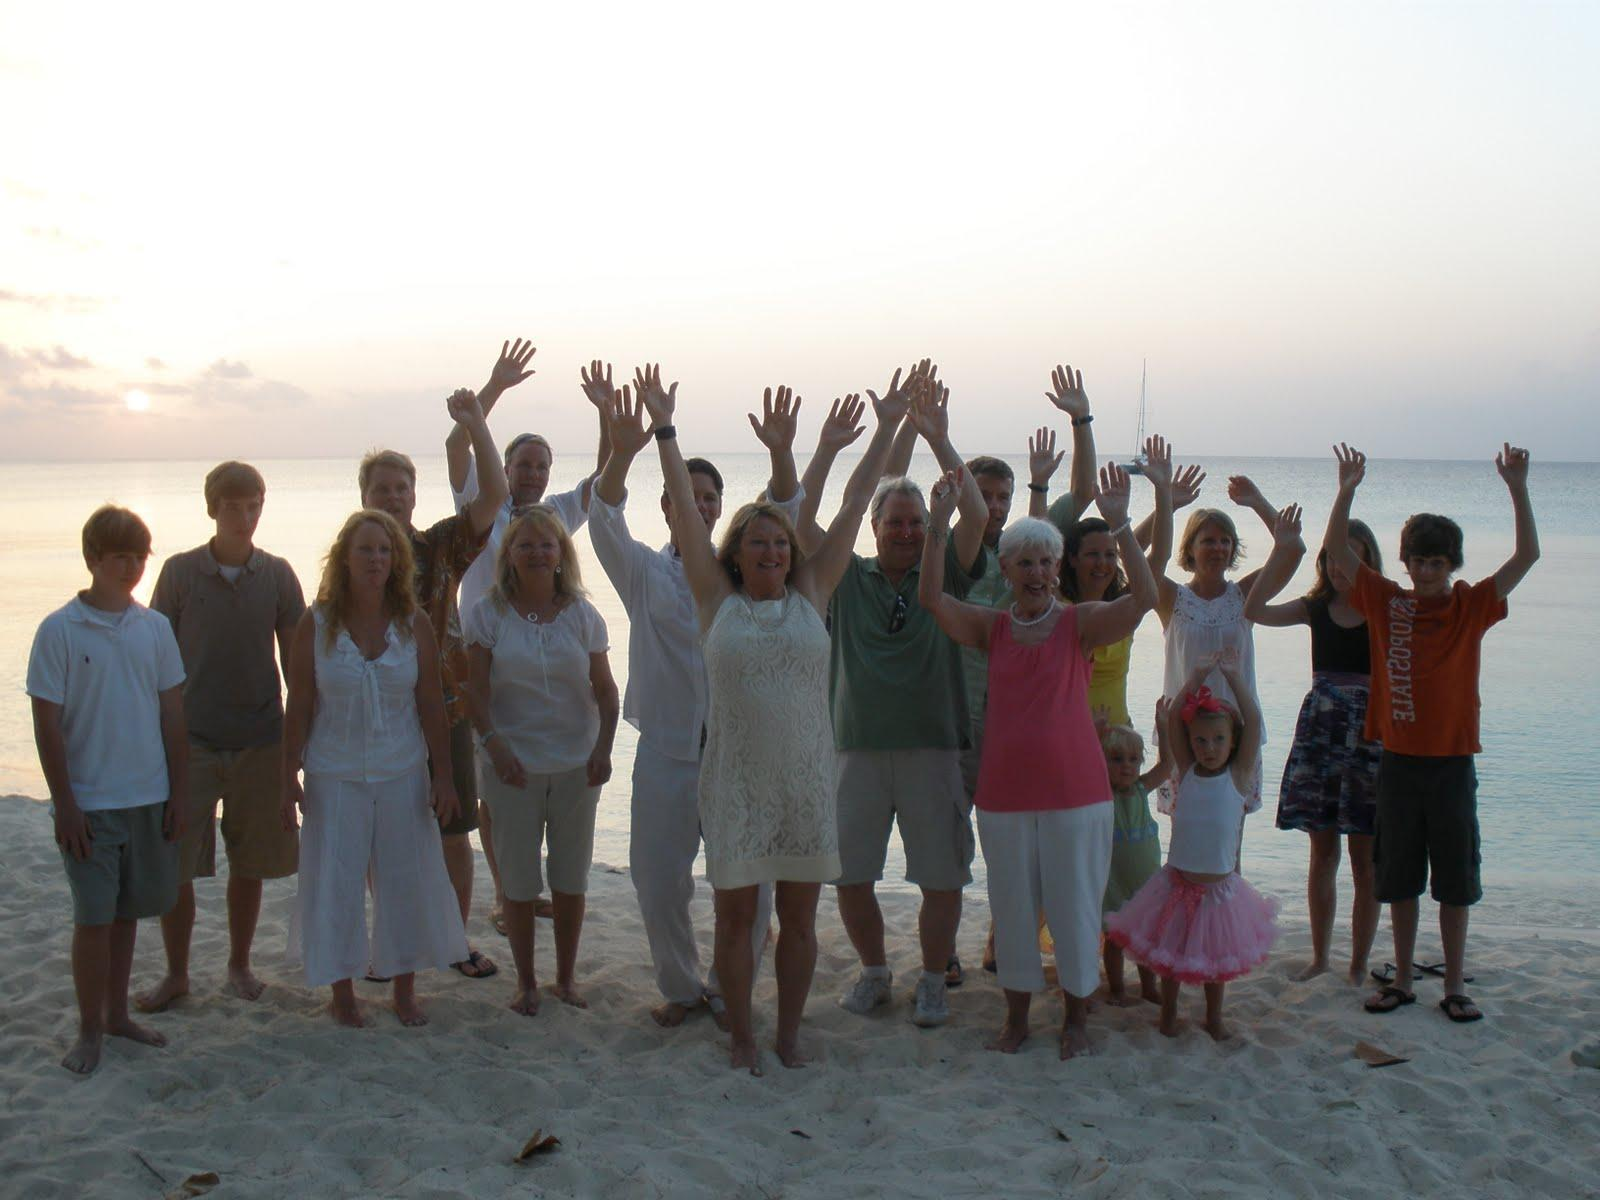 of the family who came along to be a part of their Grand Cayman wedding.